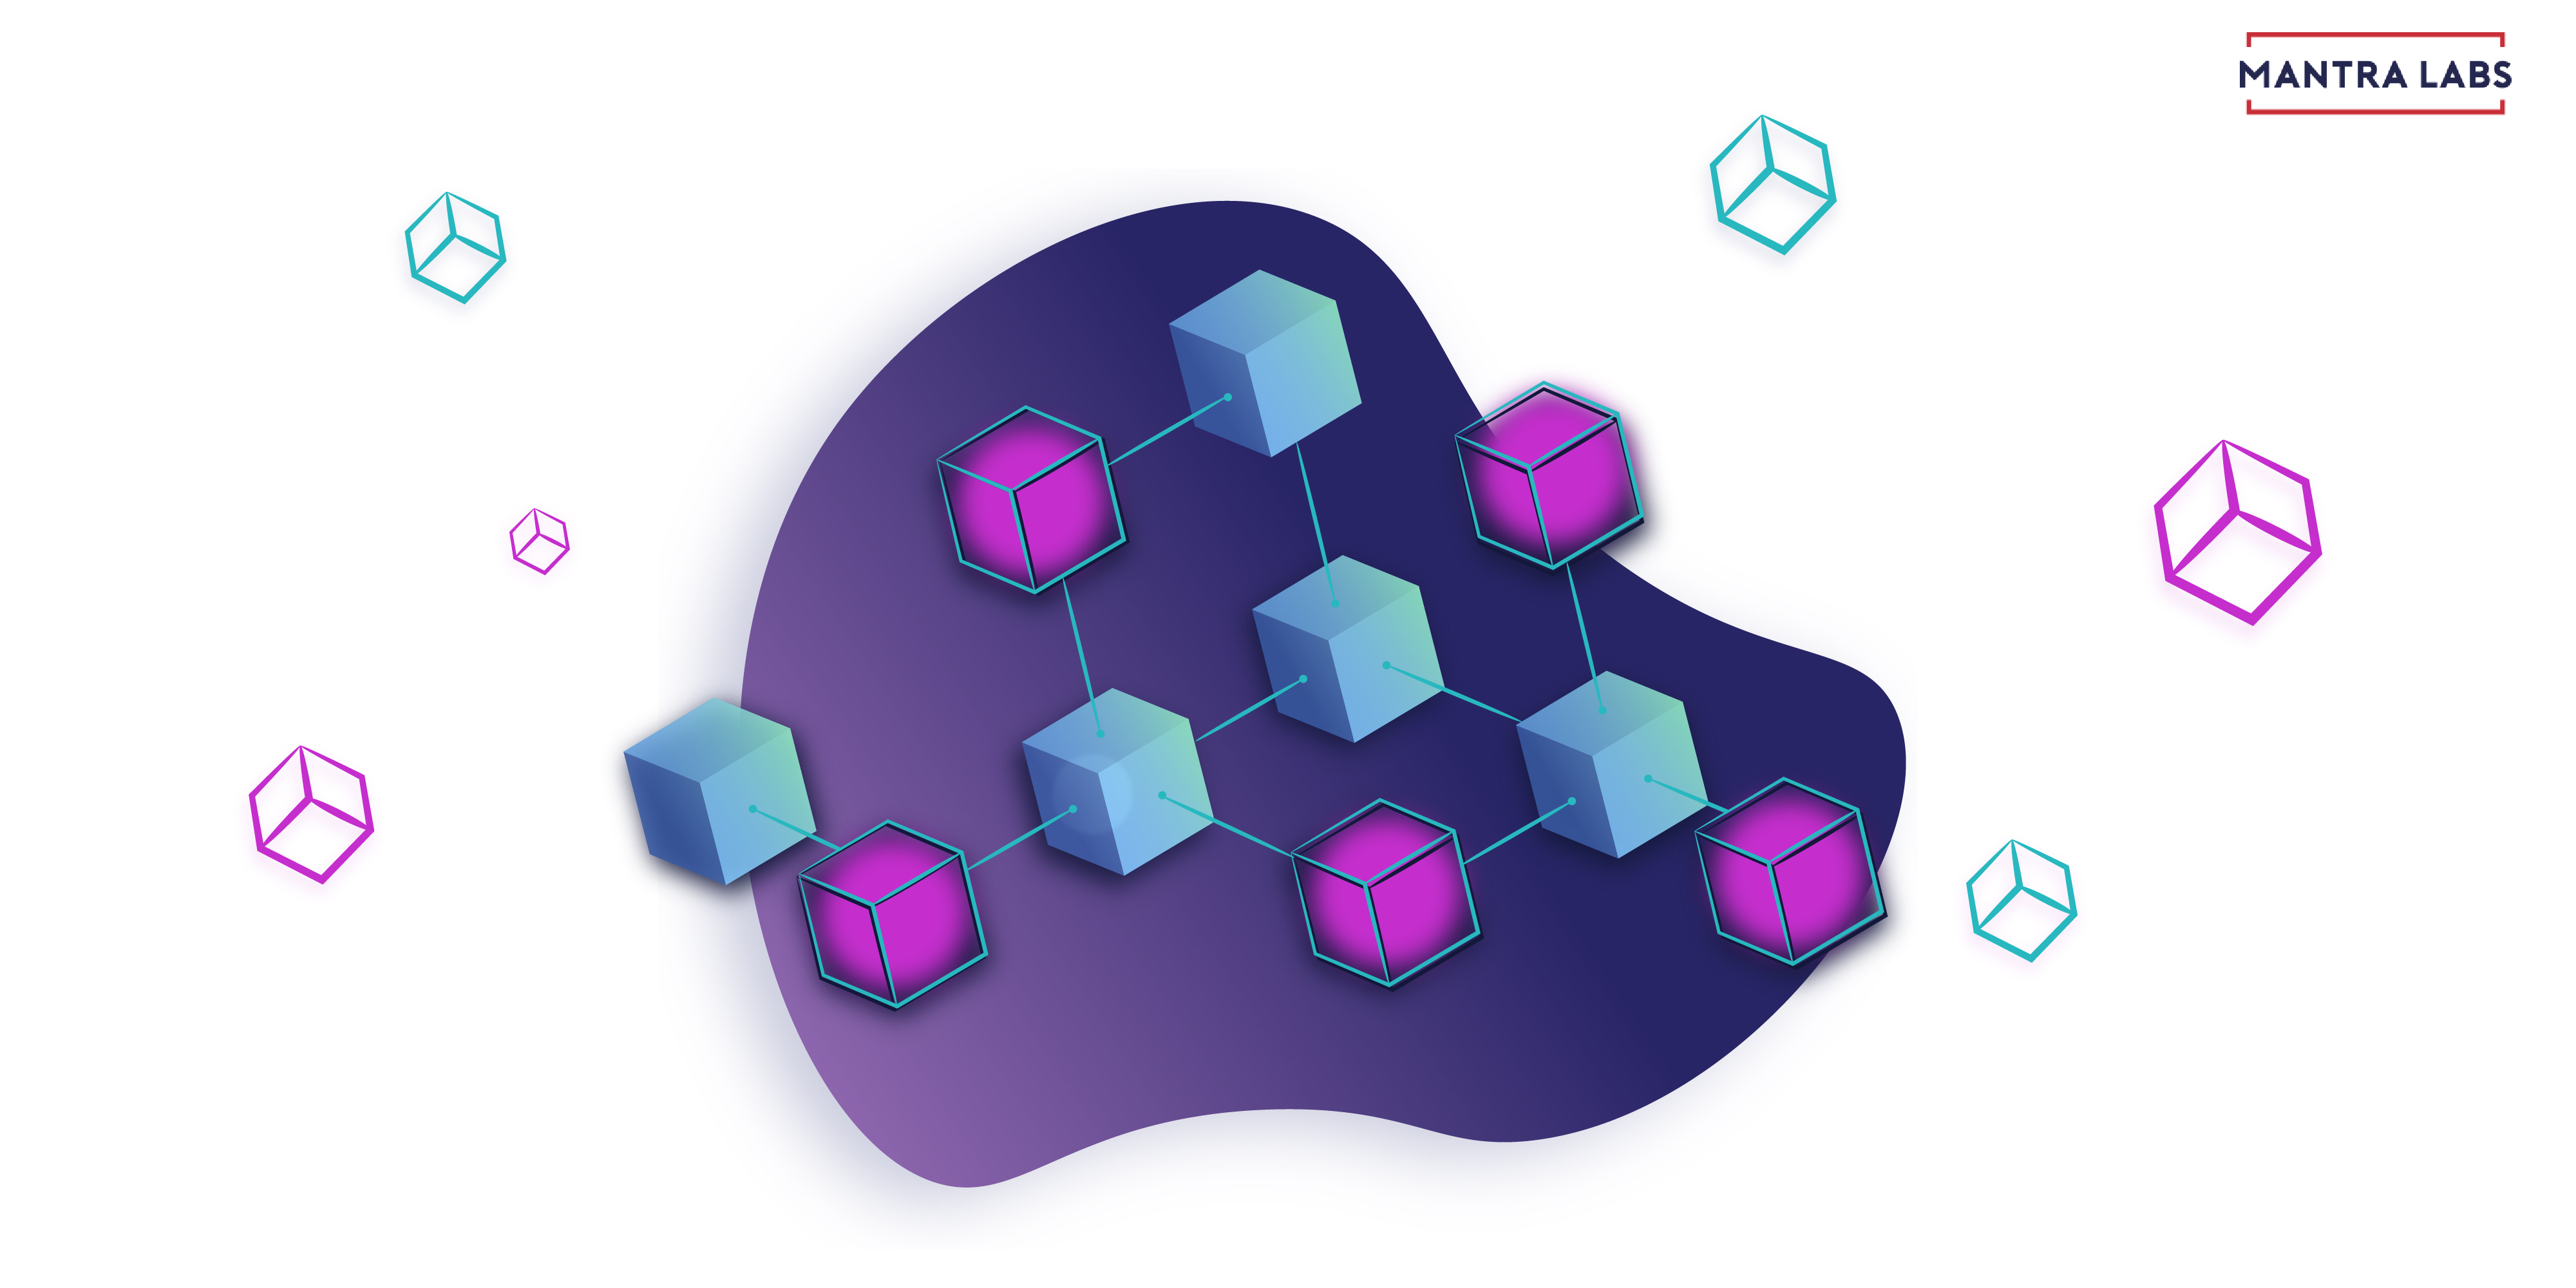 Block chain in Business featured image